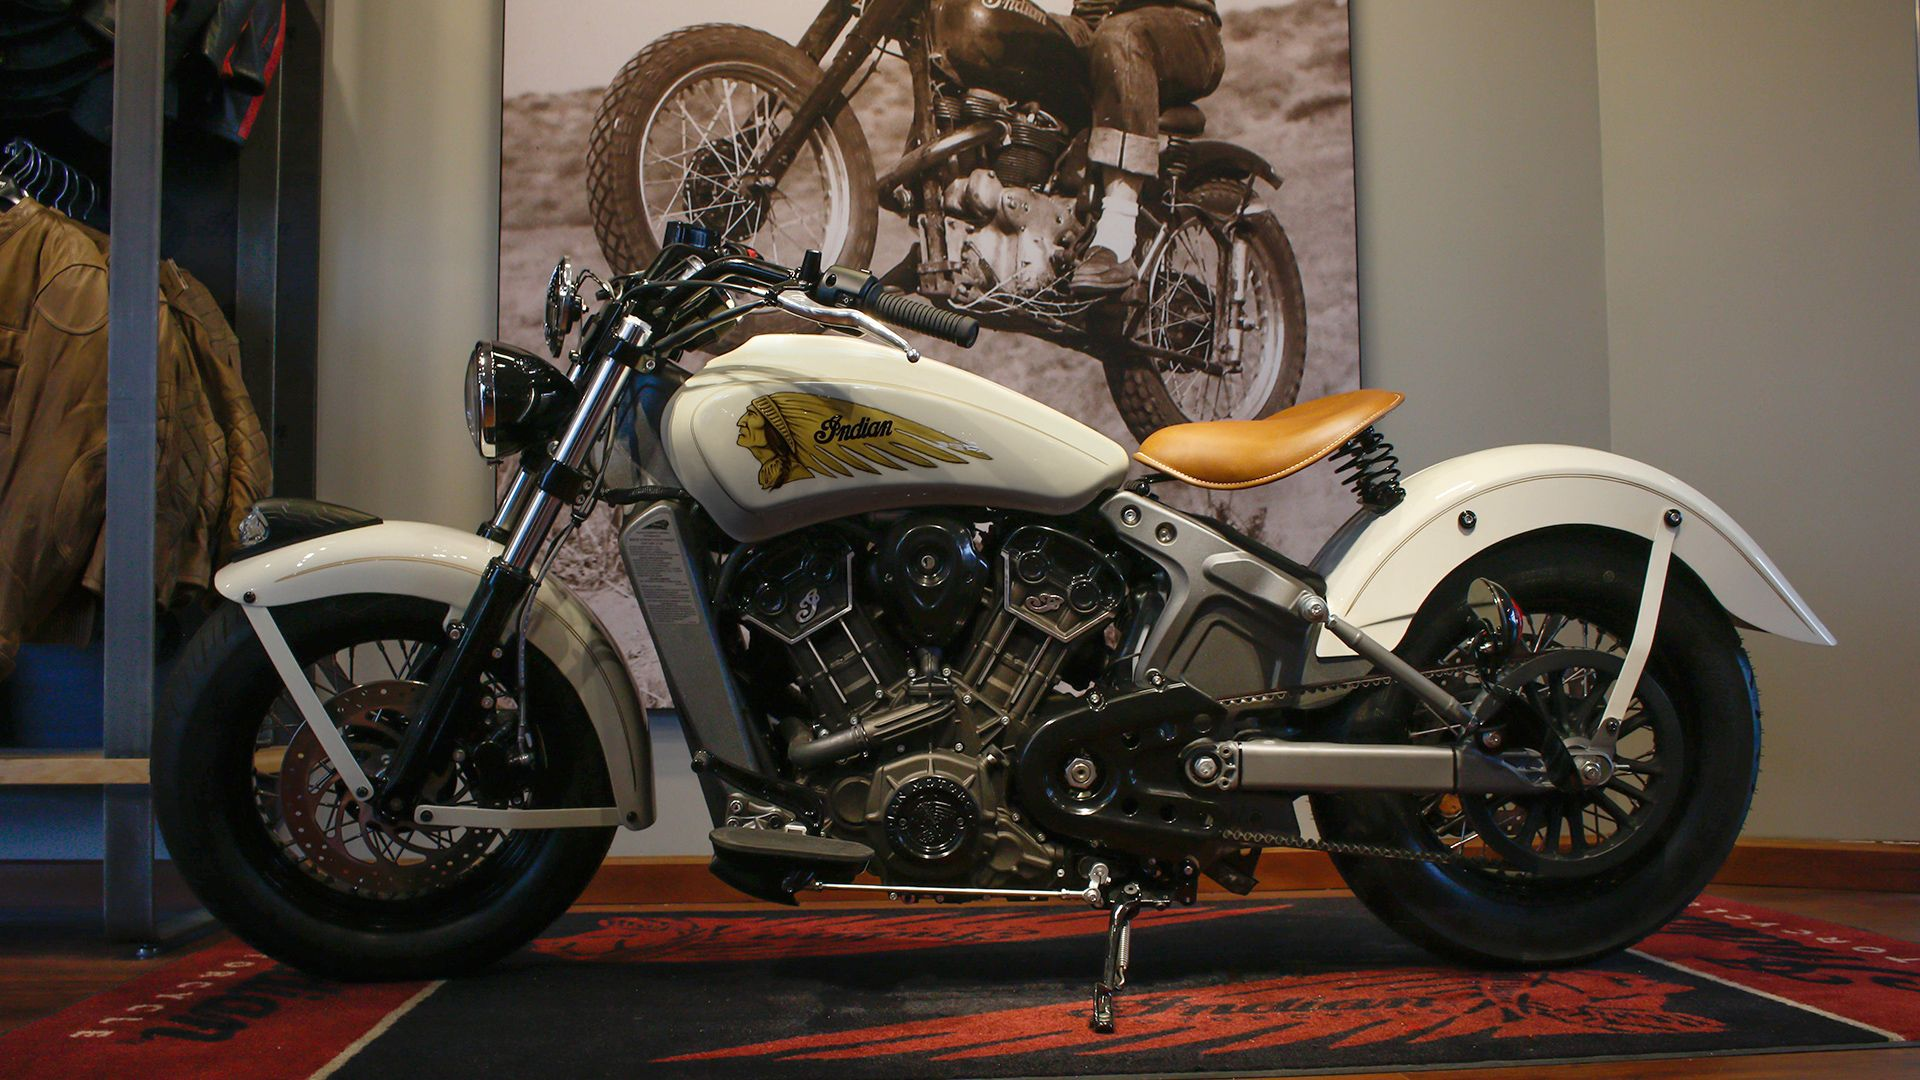 Steve Mcqueen 1930 S Inspired With Images Indian Motorcycle